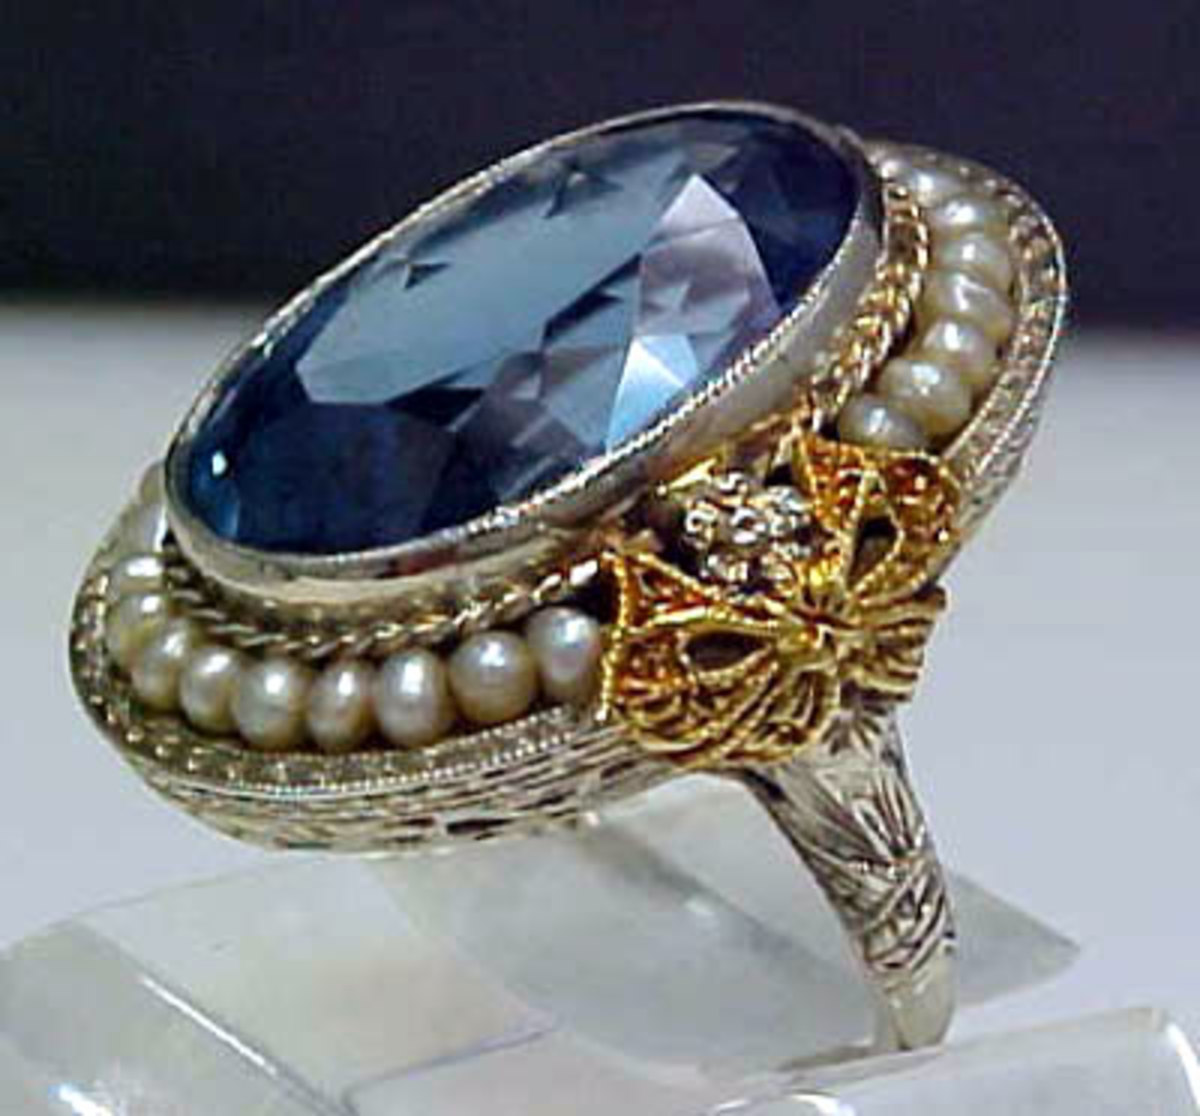 Sapphires, pearls, platinum and filigree were markers of Edwardian jewelry-making.